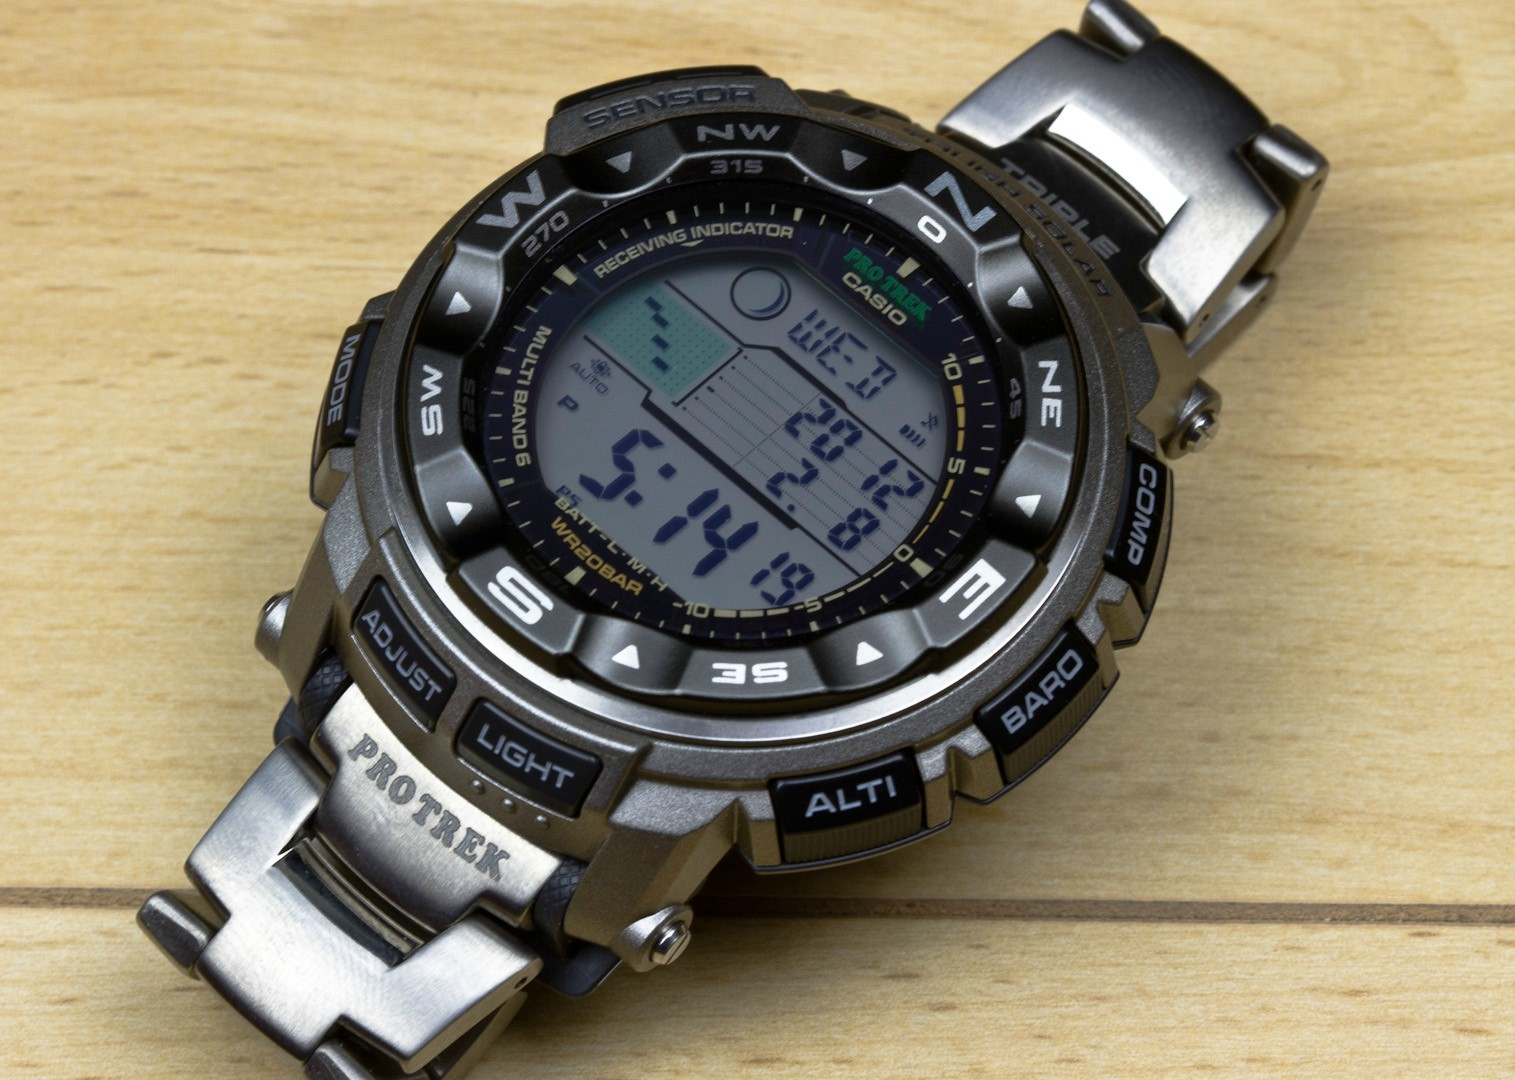 ProTrek PRW-2500 For All Purposes-4